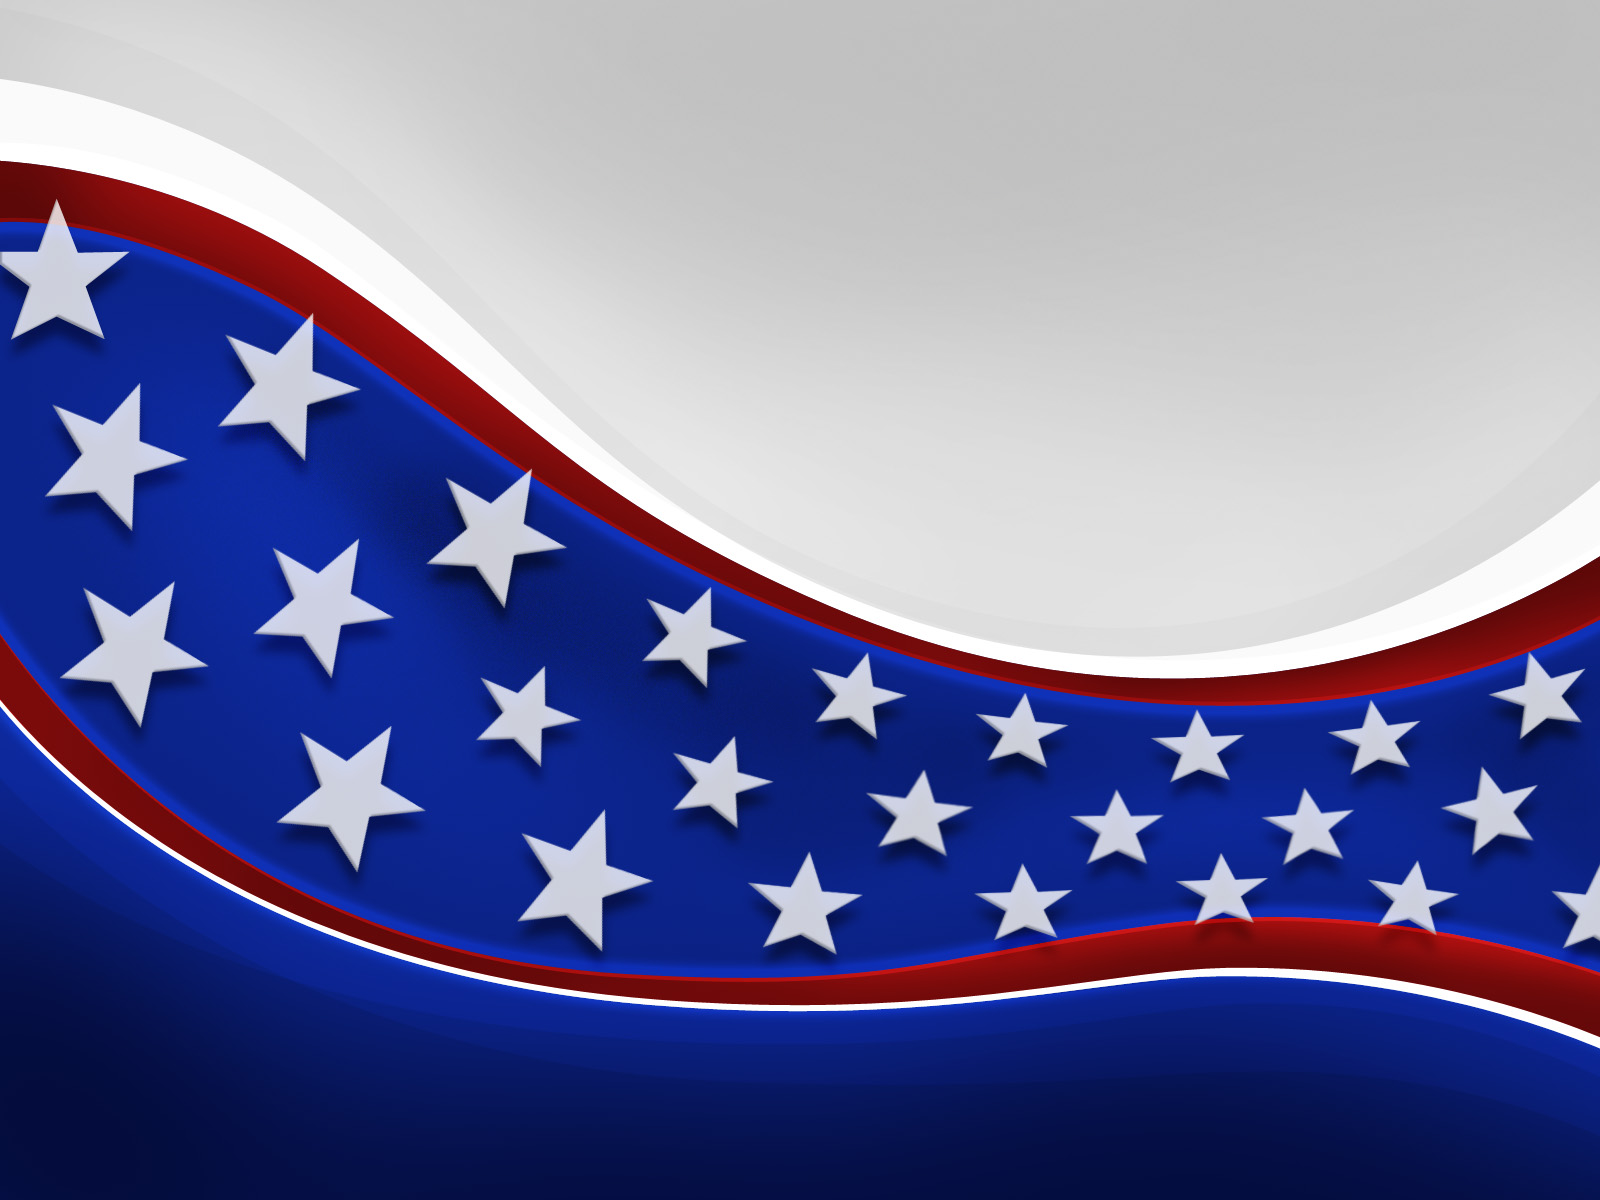 american flag border powerpoint - gse.bookbinder.co, Powerpoint templates